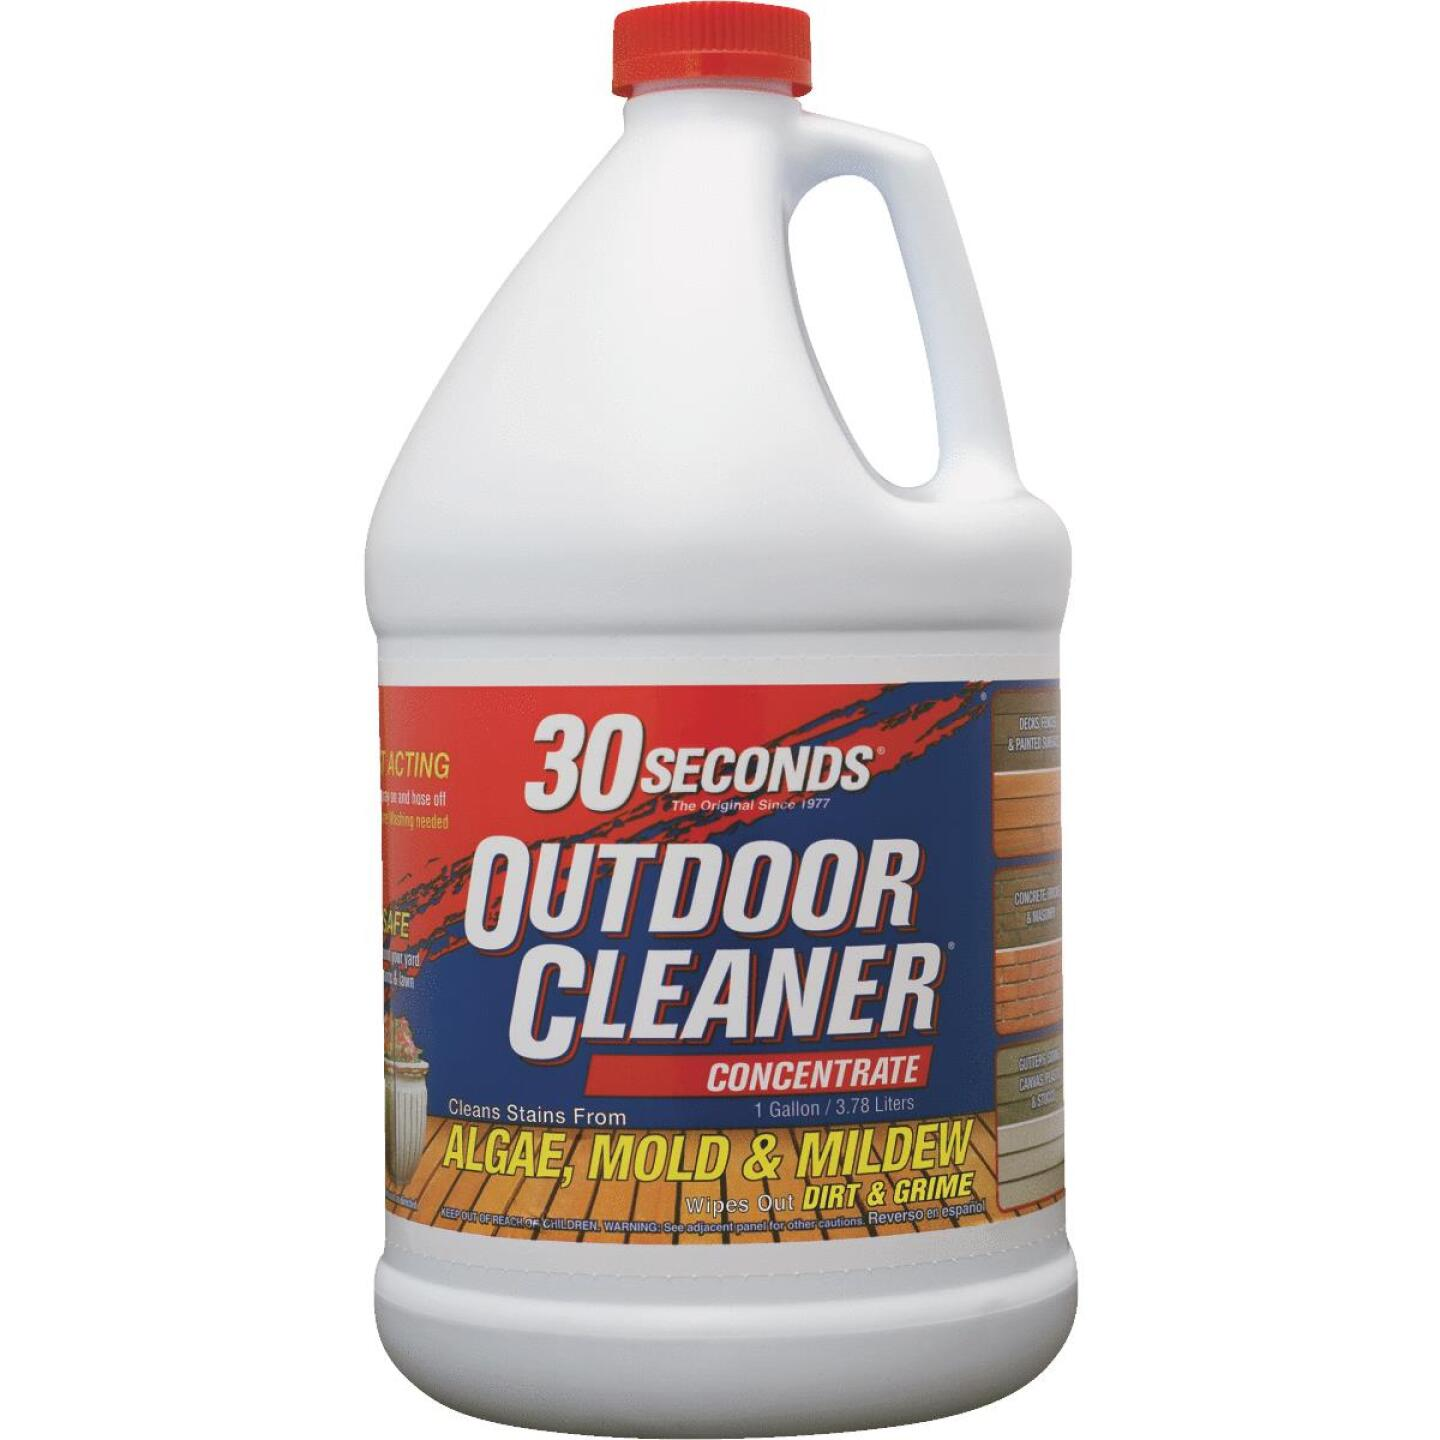 30 seconds Outdoor Cleaner 1 Gal. Concentrate Algae, Mold & Mildew Stain Remover Image 1